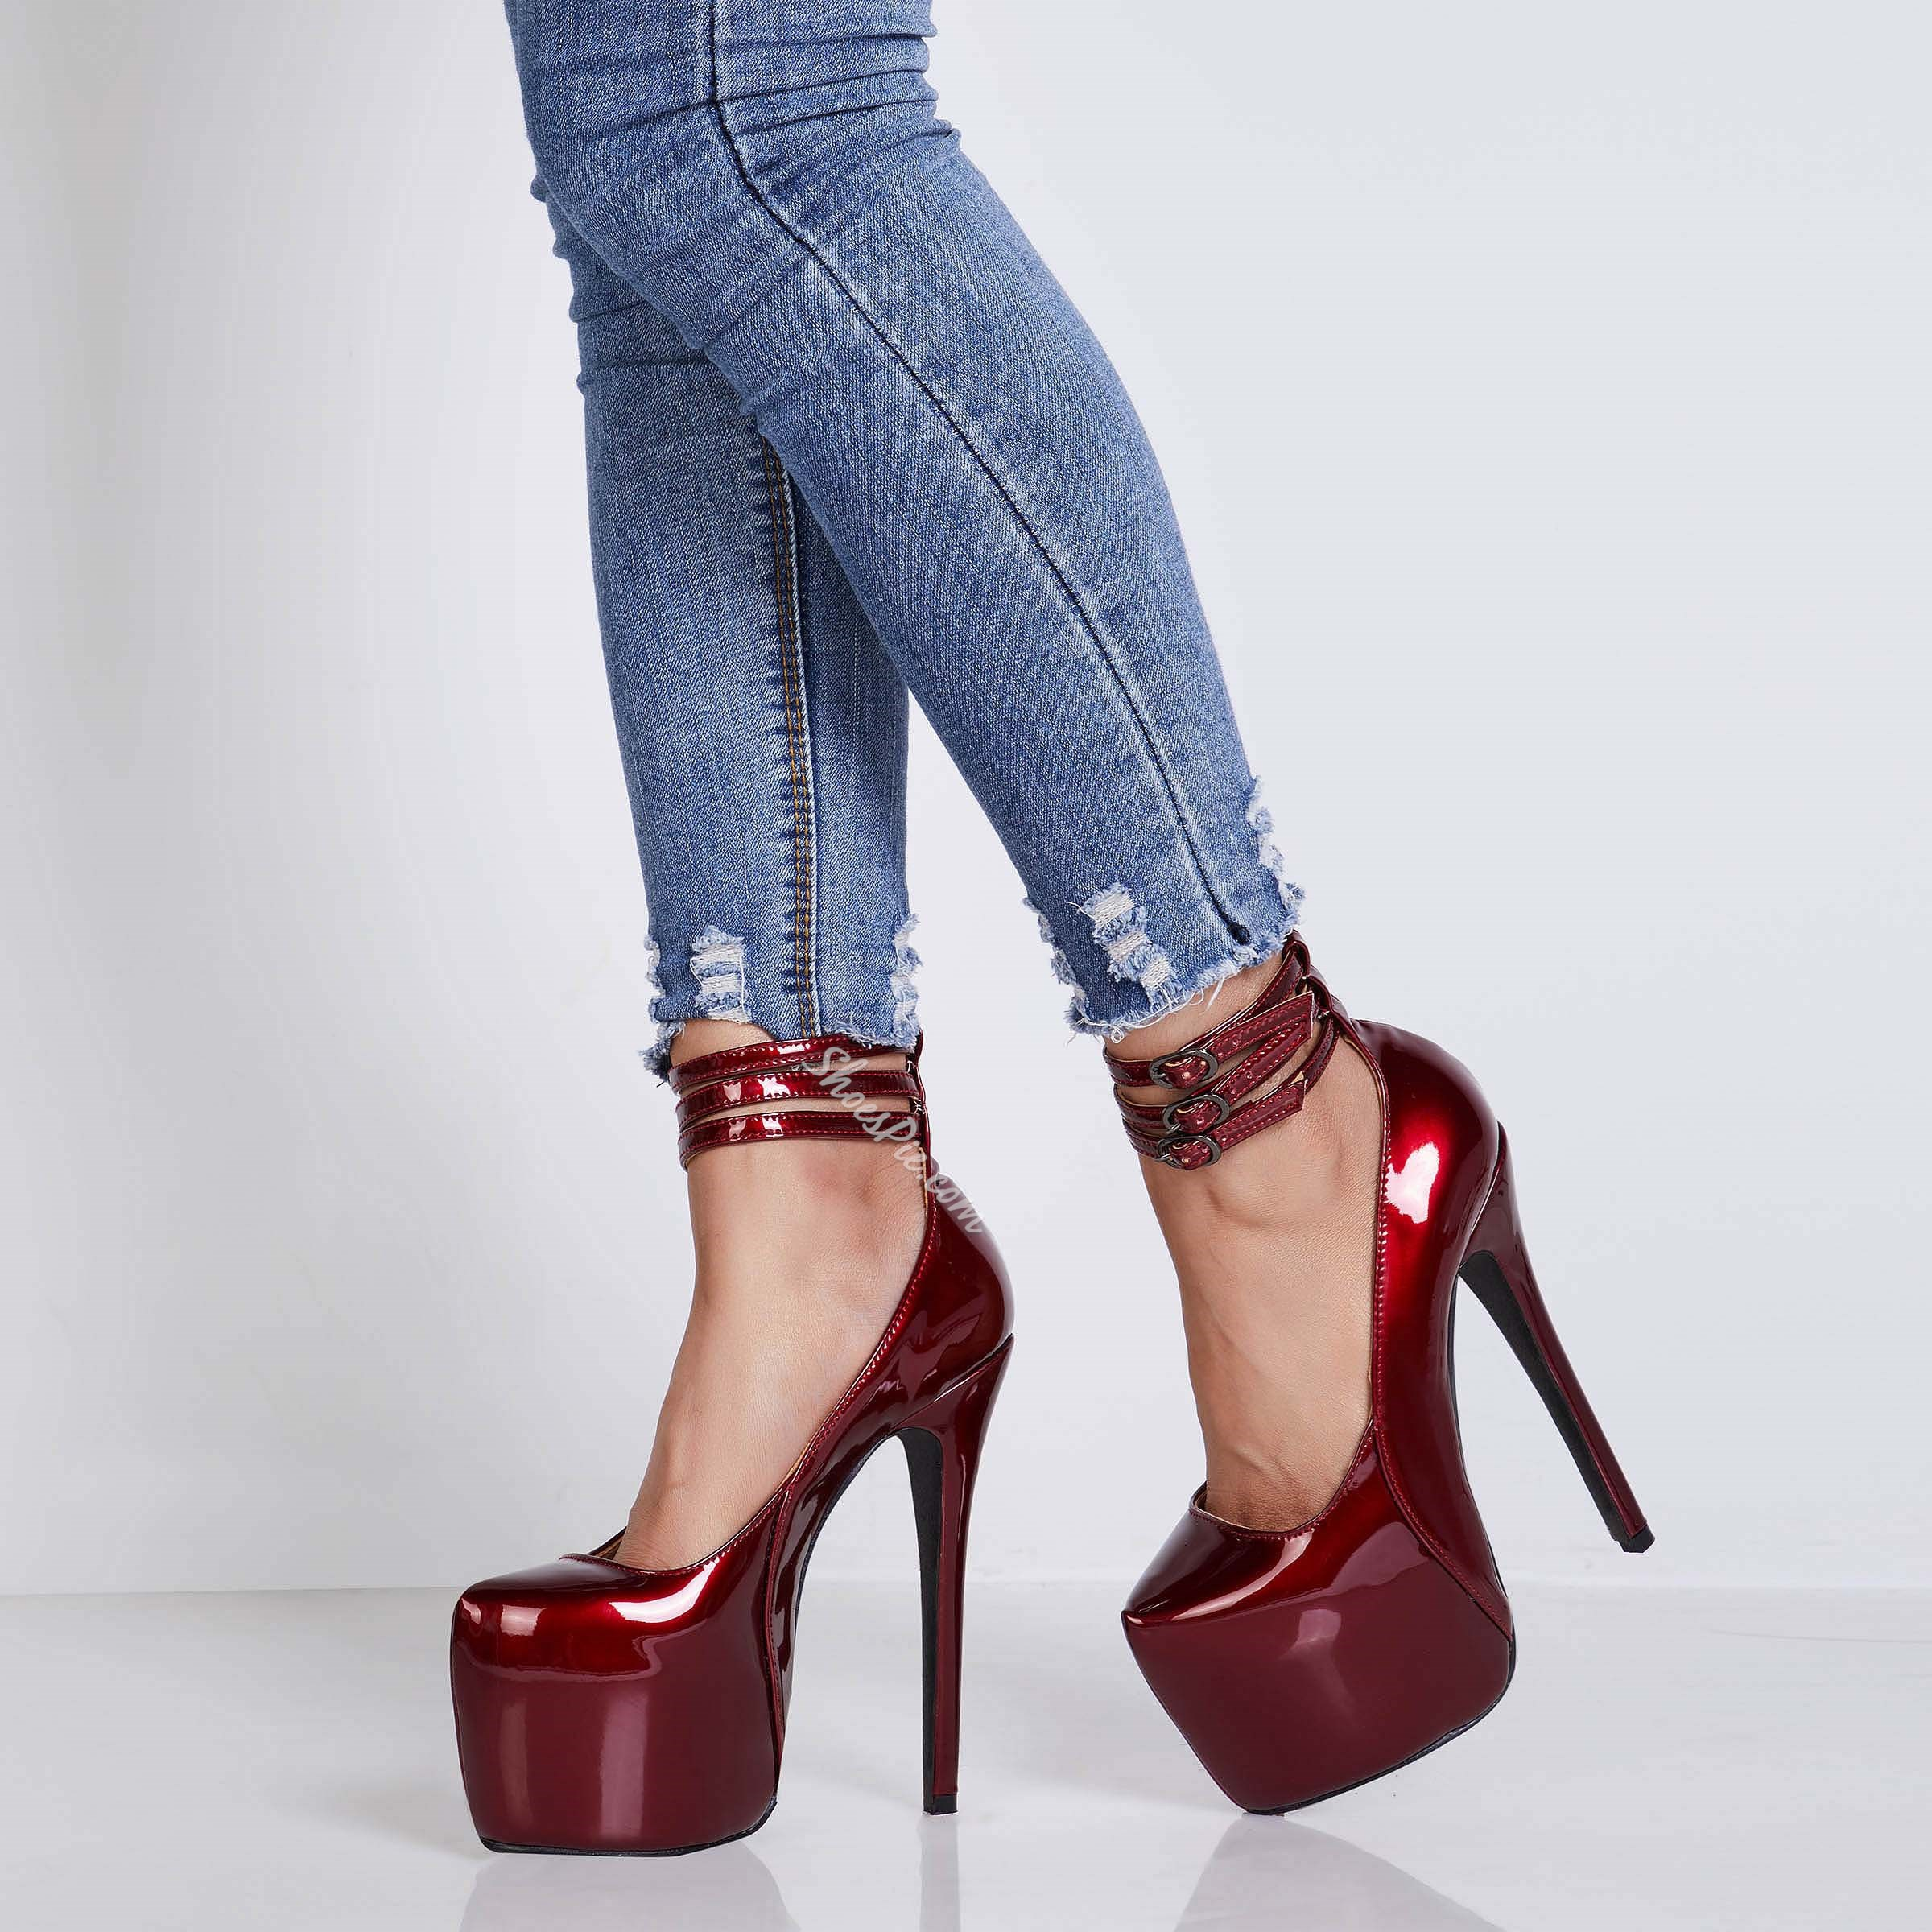 Sexy Platform High Stiletto Heel Women's Shoes